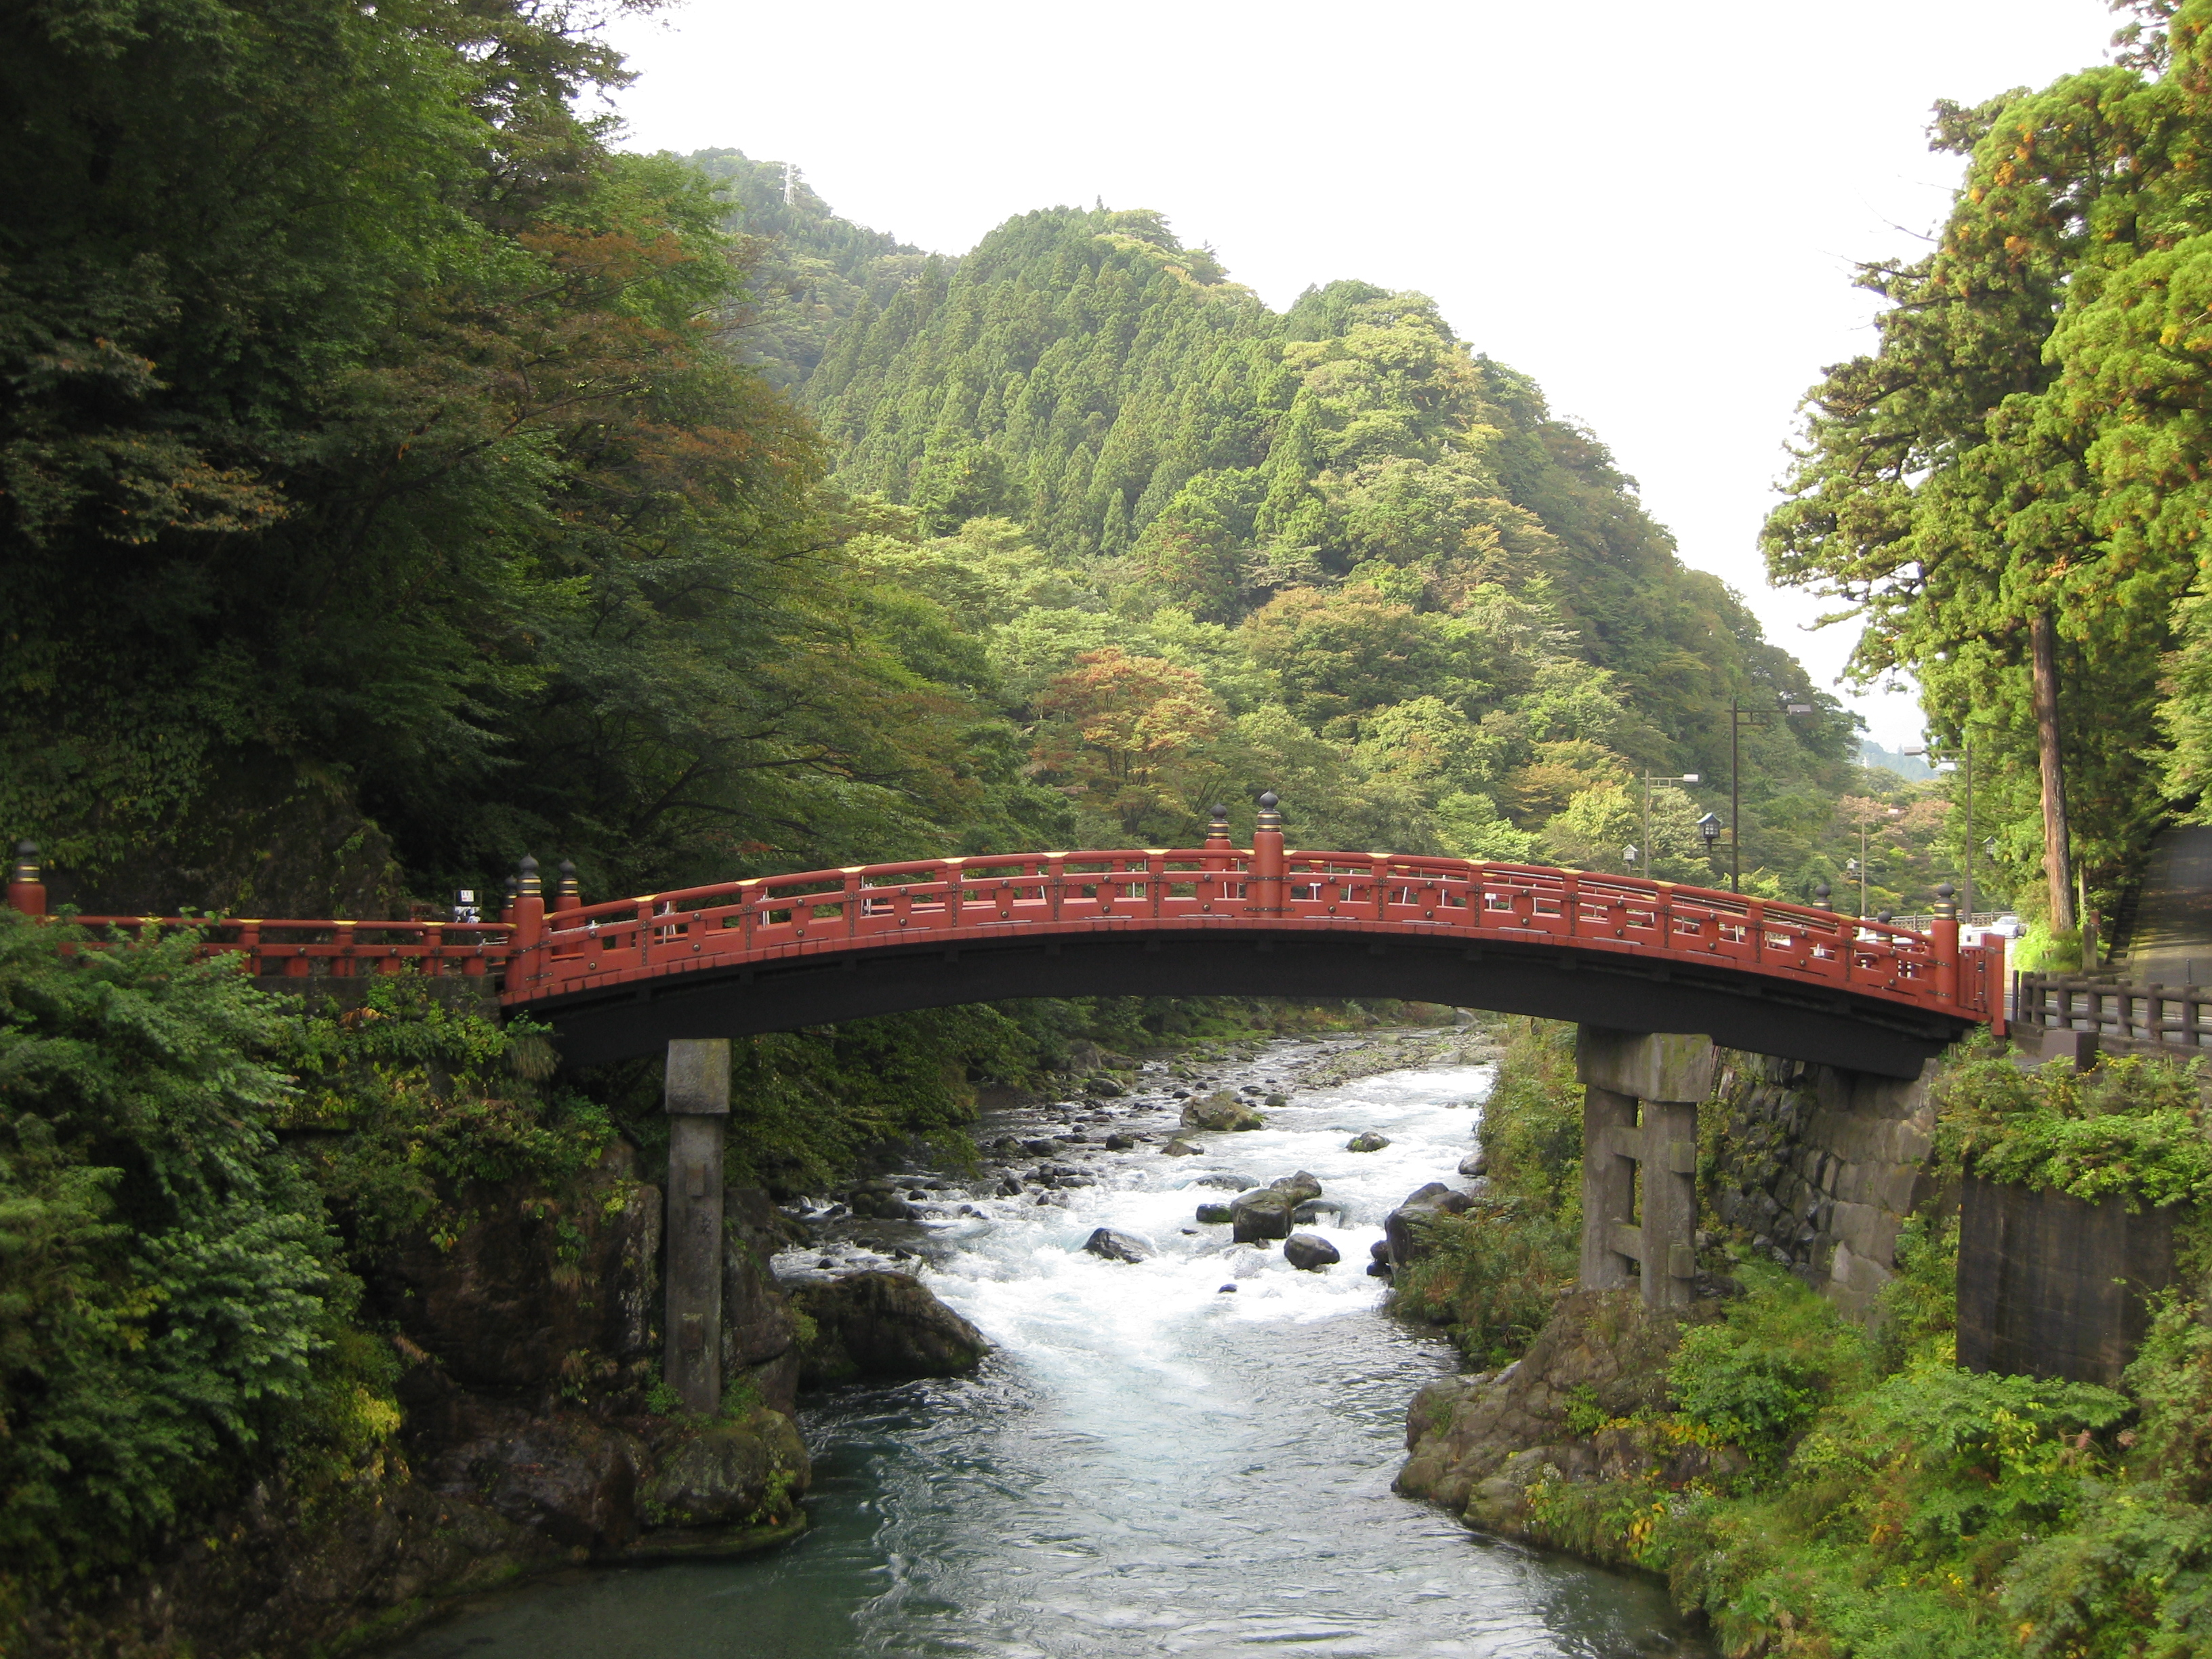 Shinkyo (Sacred Bridge) By Nick-D, via Wikimedia Commons